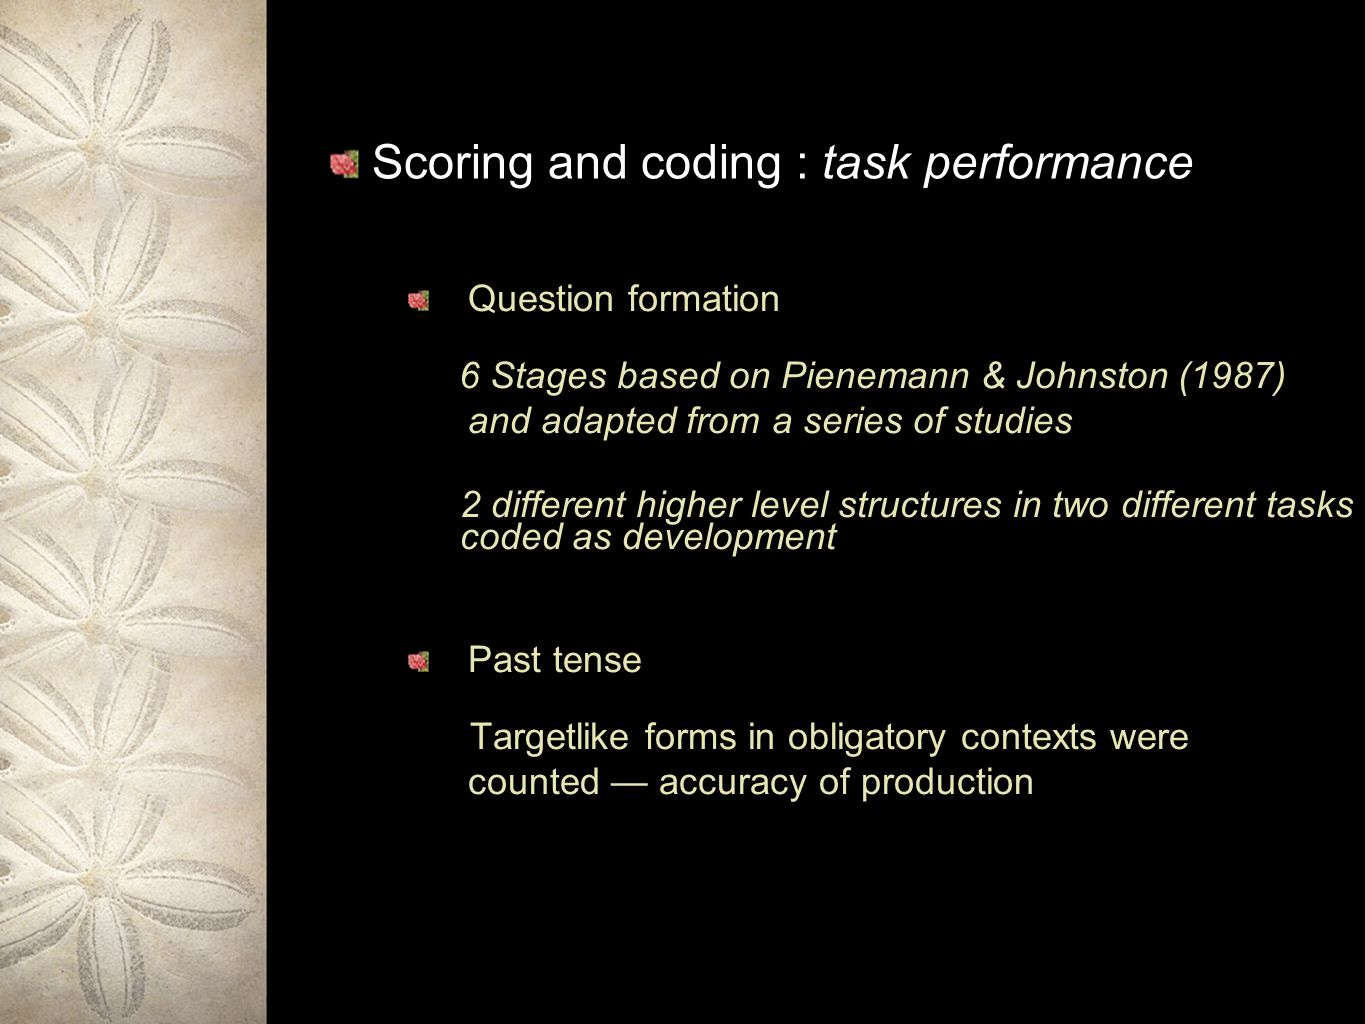 Scoring and coding : task performance Question formation 6 Stages based on Pienemann & Johnston (1987) and adapted from a series of studies 2 different higher level structures in two different tasks coded as development Past tense Targetlike forms in obligatory contexts were counted accuracy of production